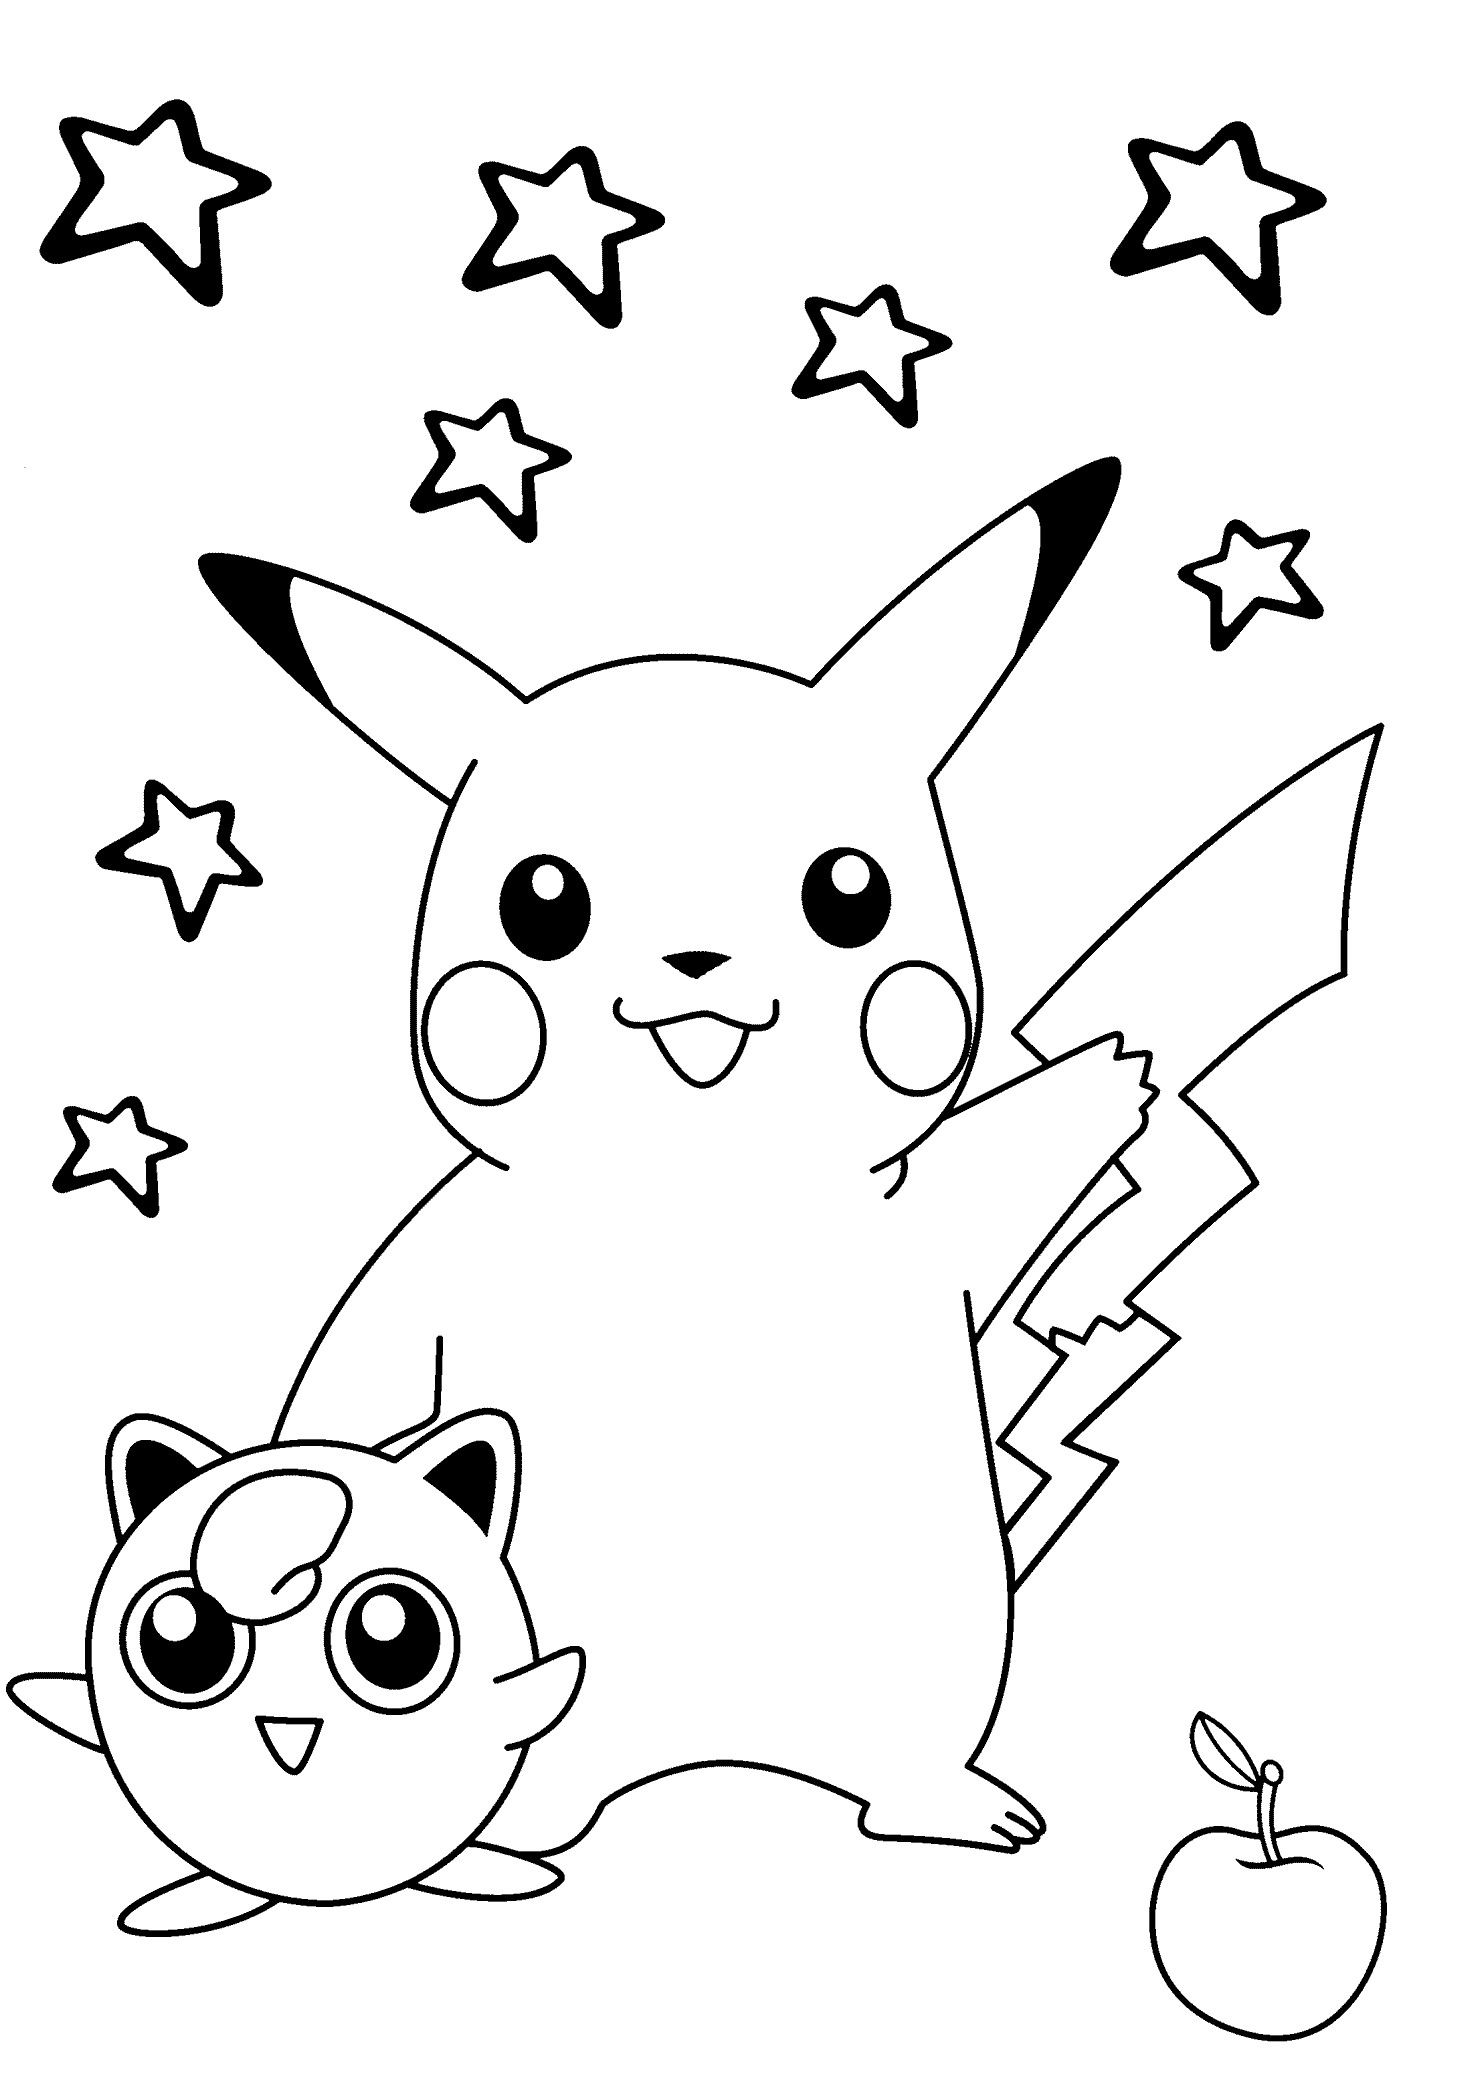 Free Pokemon Coloring Book Pdf From The Thousands Of Photos On Line Regarding Free Pokem Pikachu Coloring Page Pokemon Coloring Pages Pokemon Coloring Sheets